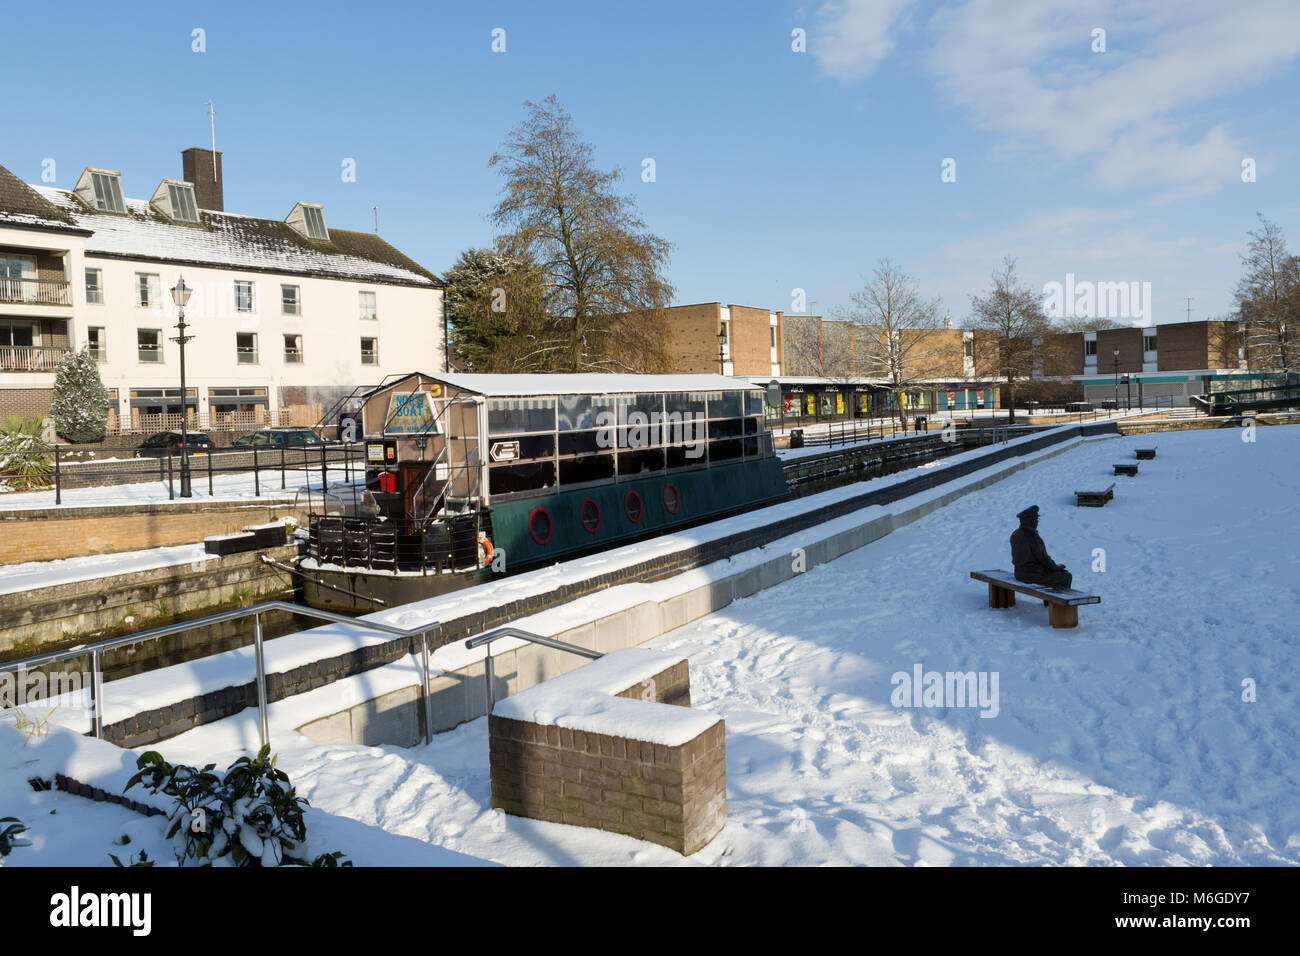 Little Ouse River at Thetford Riverside with boat restaurant, Bell Hotel and shops in distance. - Stock Image